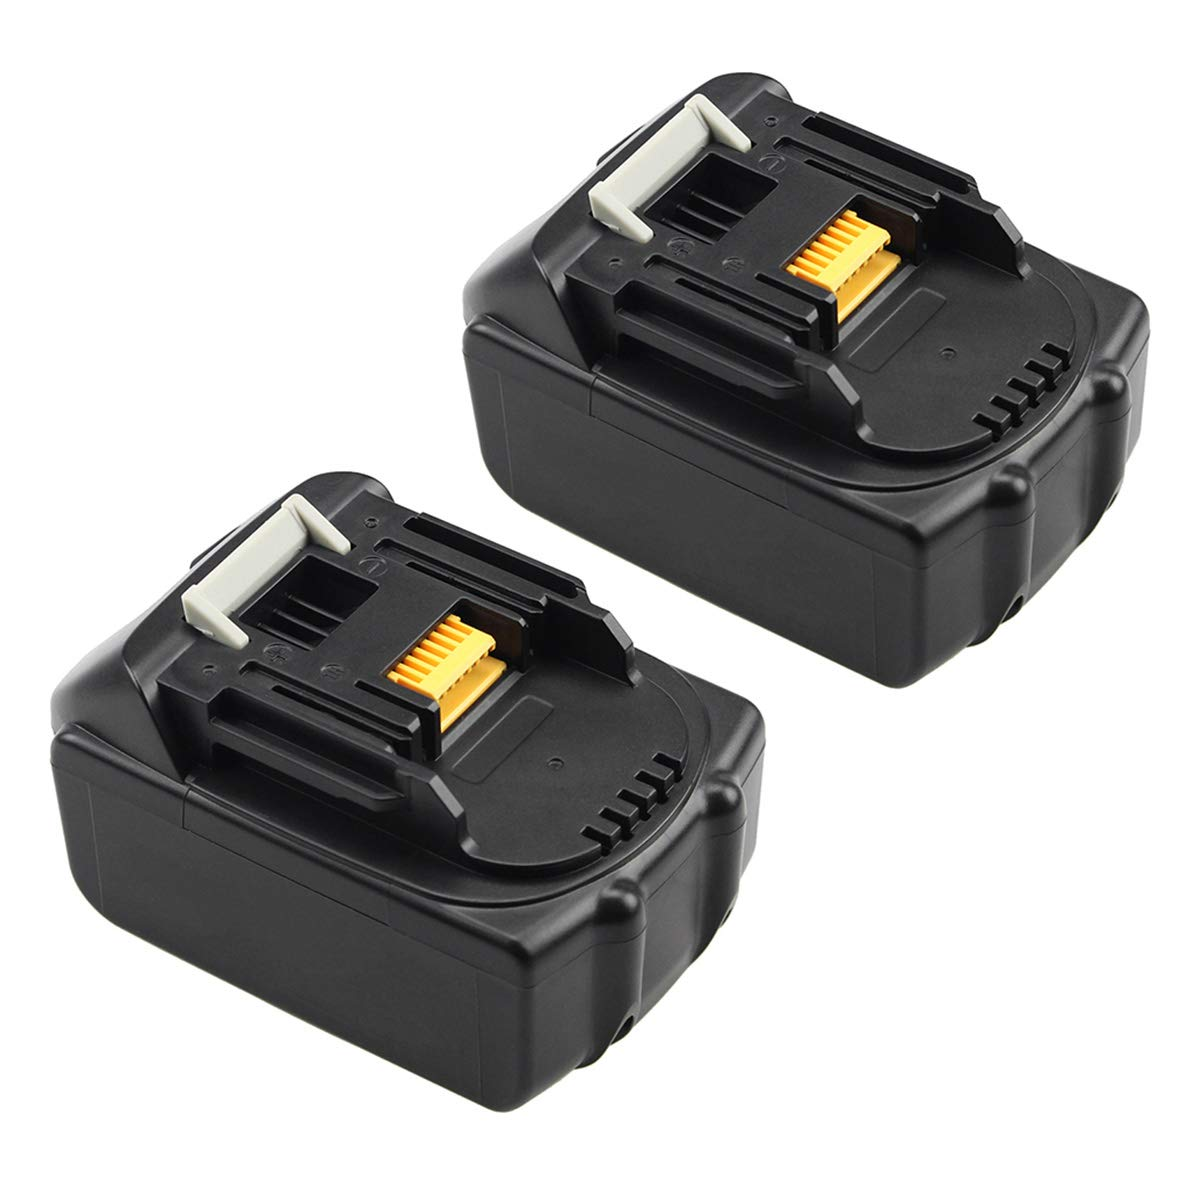 Eagglew Replace for Makita 18V Battery 3.0Ah LXT Lithium-Ion Replacement BL1850 BL1840 BL1845 BL1830 LXT400 Cordless Power Tools Batteries(2 PACKS) by Eagglew (Image #1)